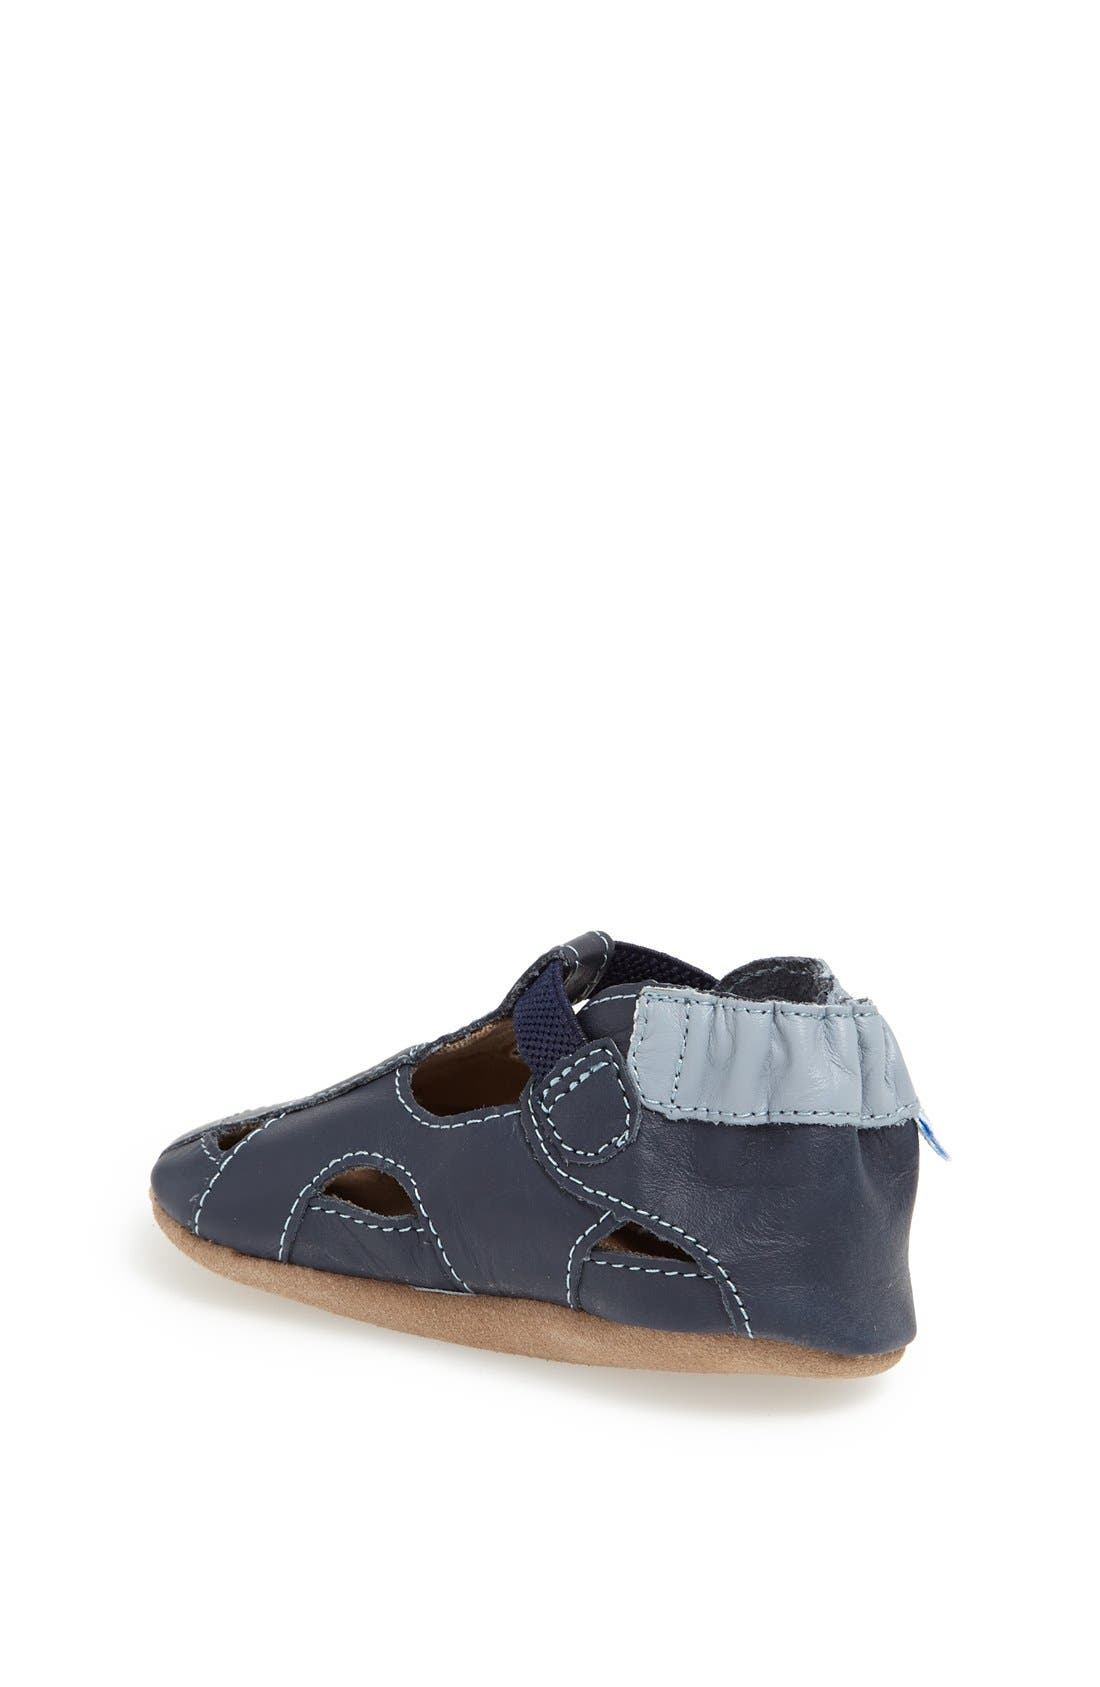 ROBEEZ<SUP>®</SUP>, Fisherman Sandal, Alternate thumbnail 3, color, NAVY